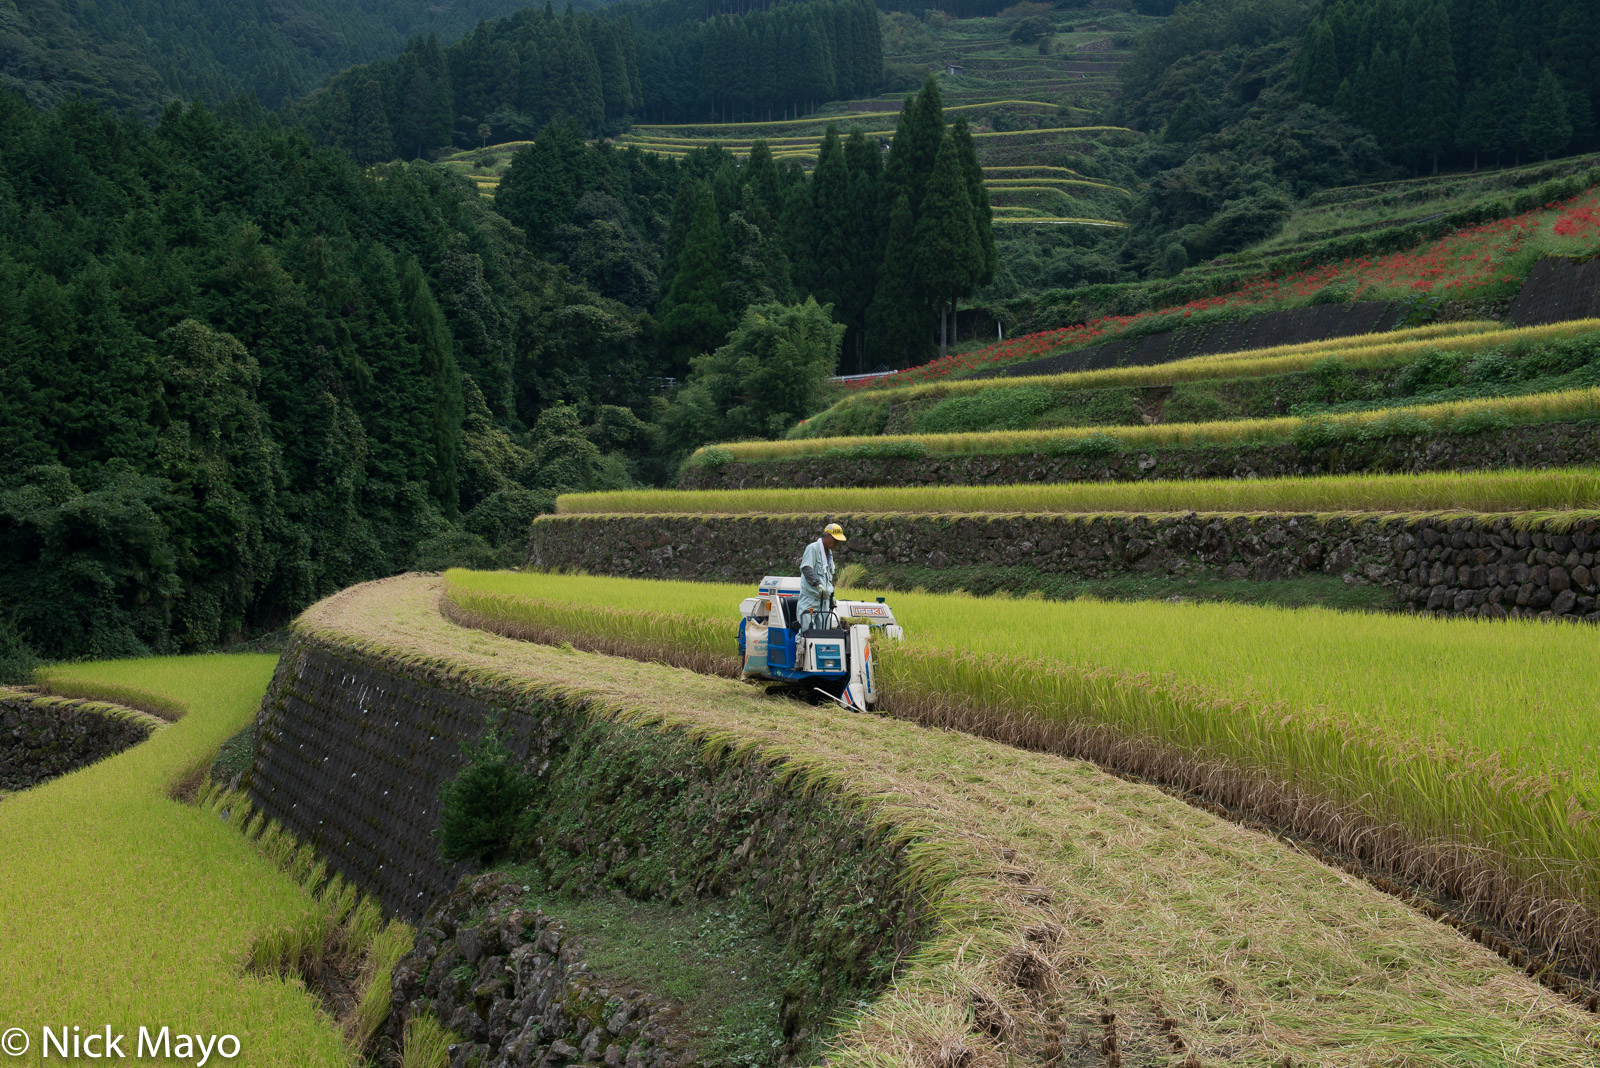 Harvesting, Japan, Kyushu, Paddy, photo